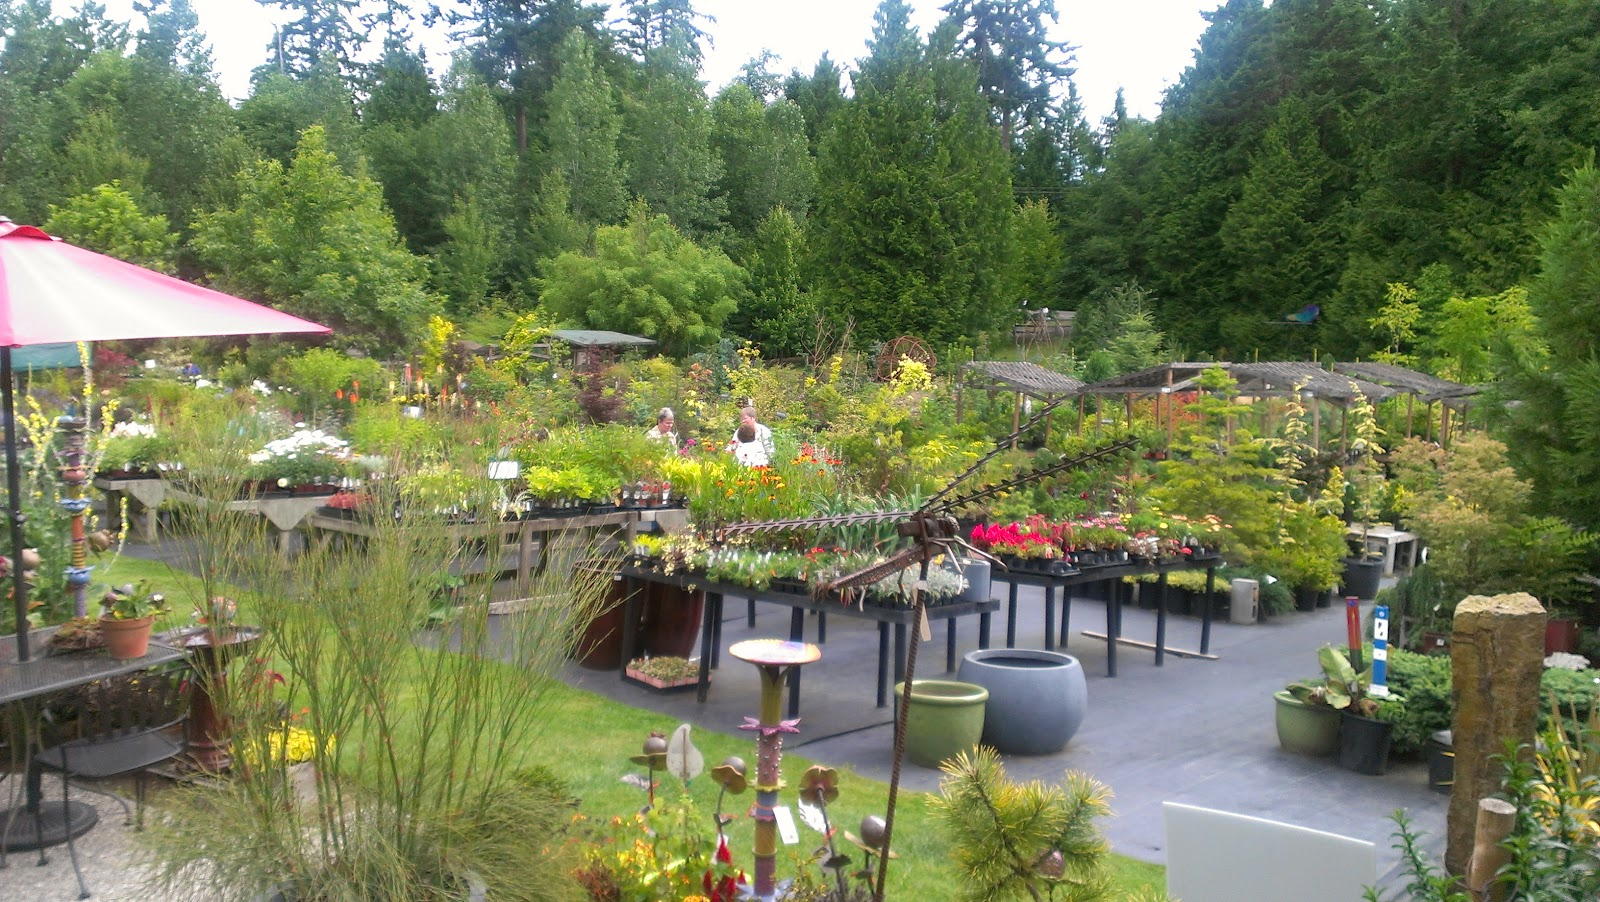 This Past Weekend I Finally Managed To Make My Way Up The Kitsap Peninsula Dragonfly Farms Nursery Whose Motto Is Where Abnormality Normality